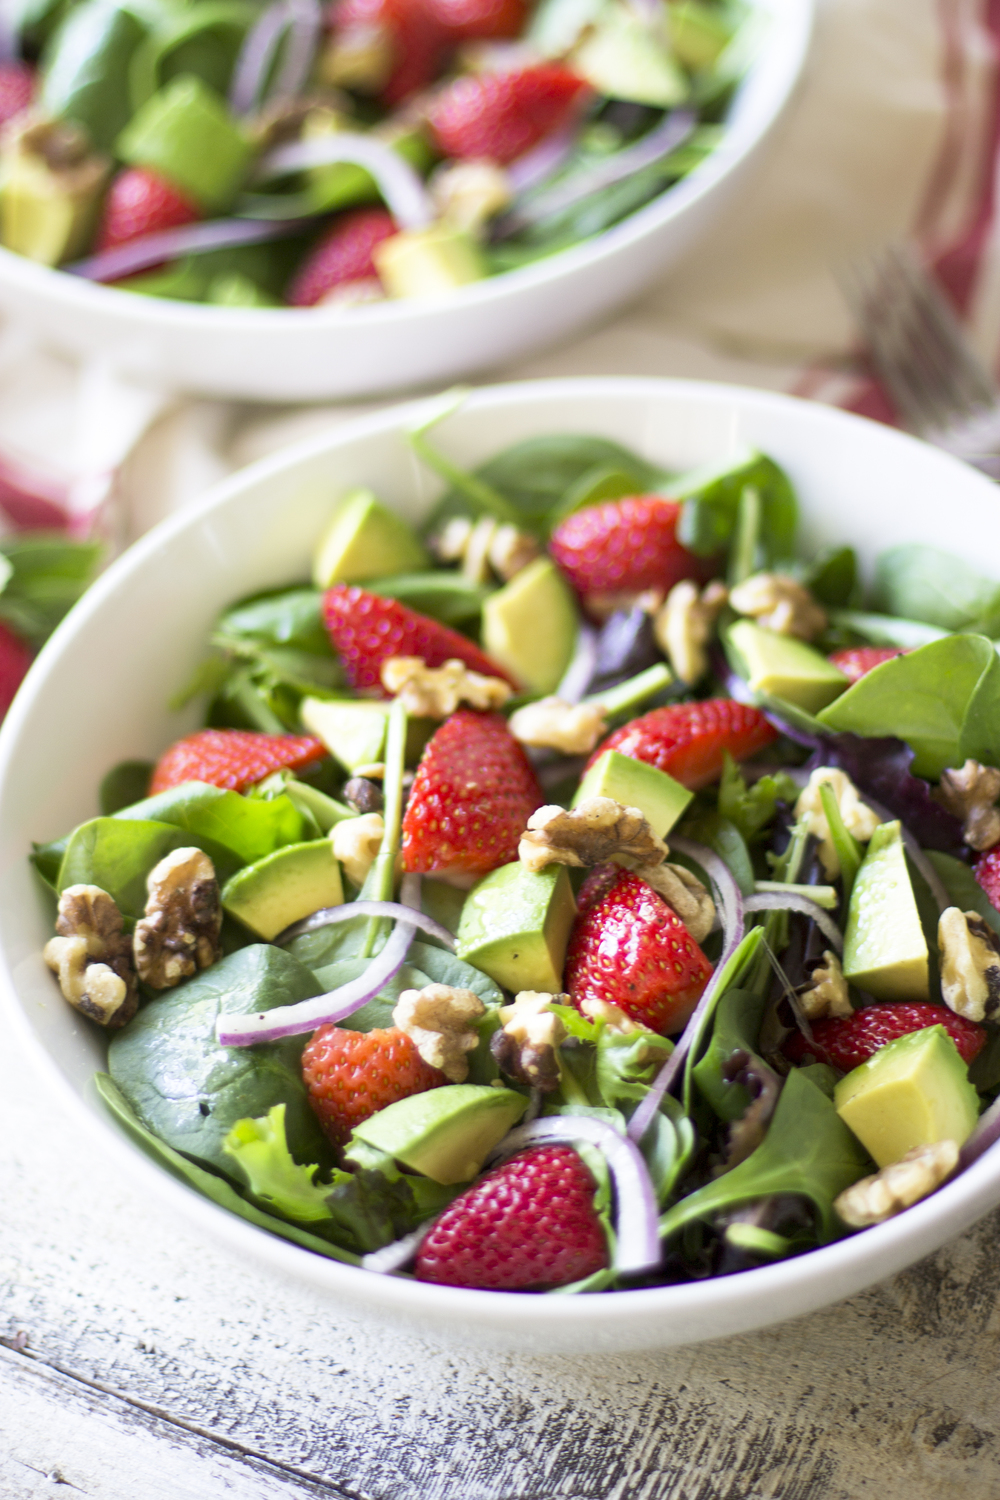 Strawberry, Avocado, and Walnut Salad: My Diary of Us